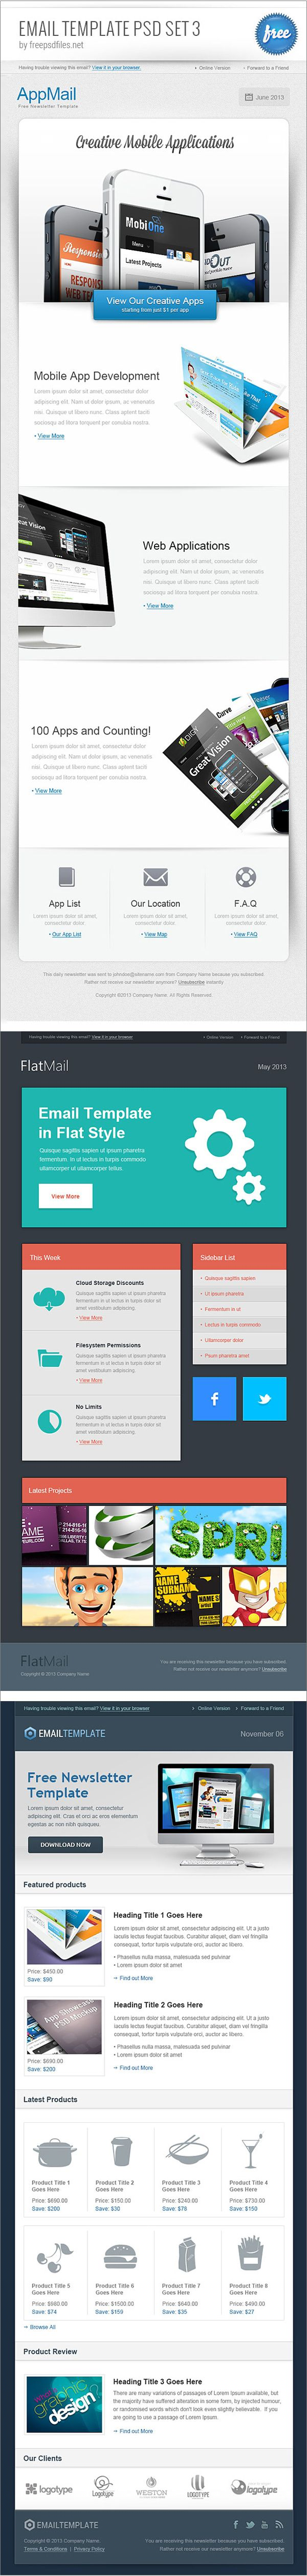 8 best templates images on Pinterest | Background images ...